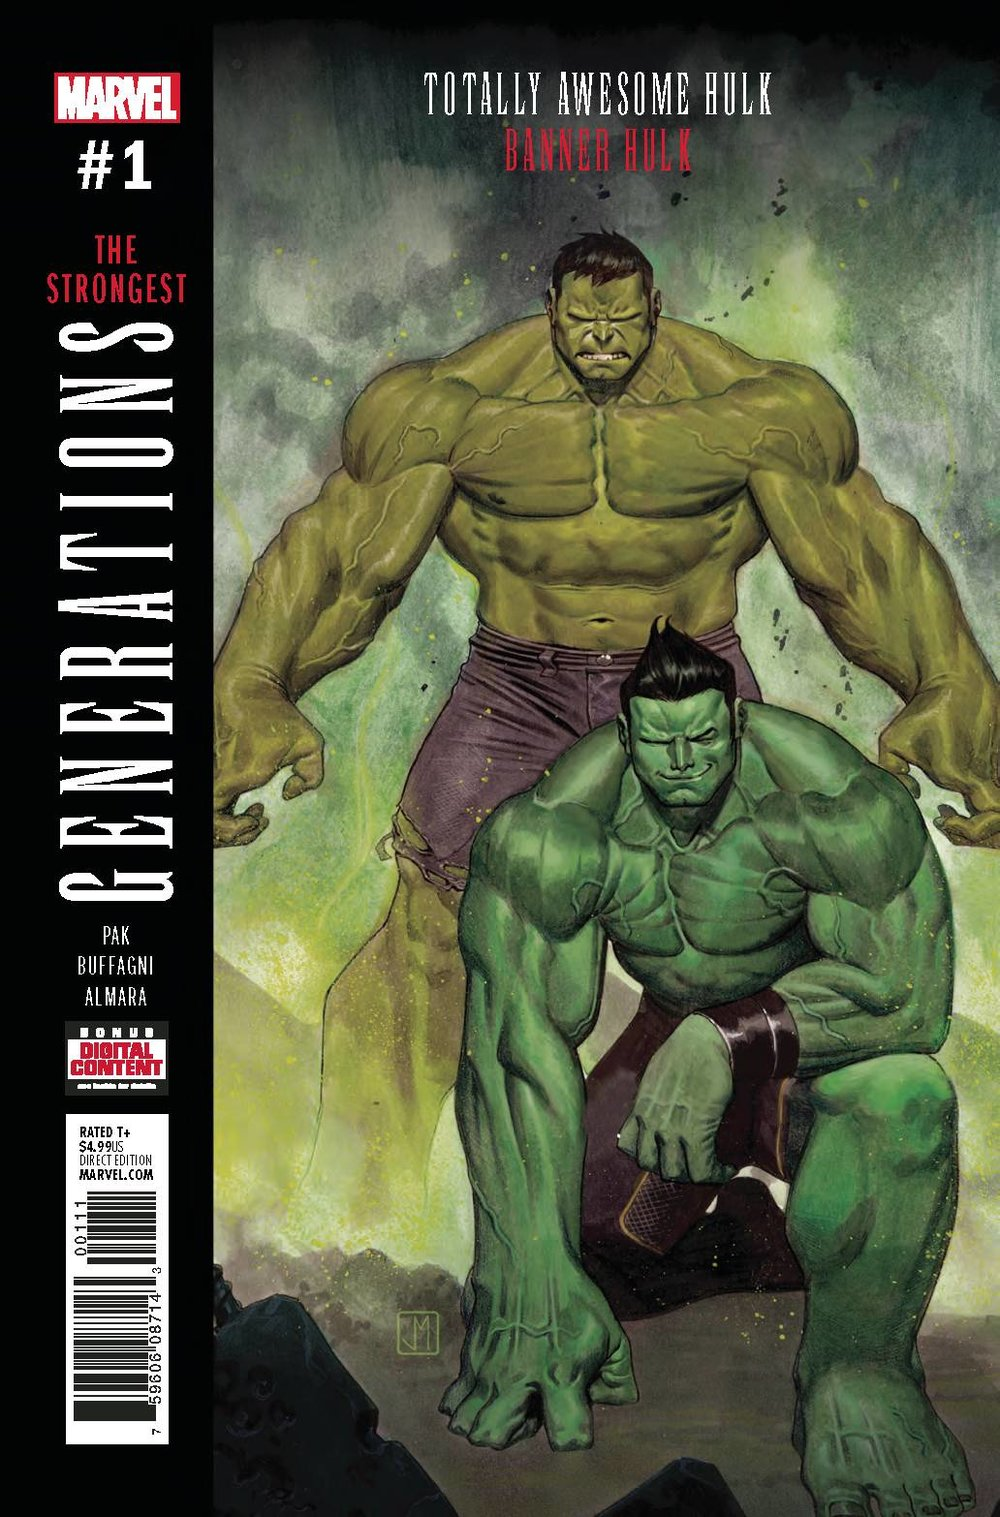 GENERATIONS BANNER HULK & TOTALLY AWESOME HULK 1.jpg